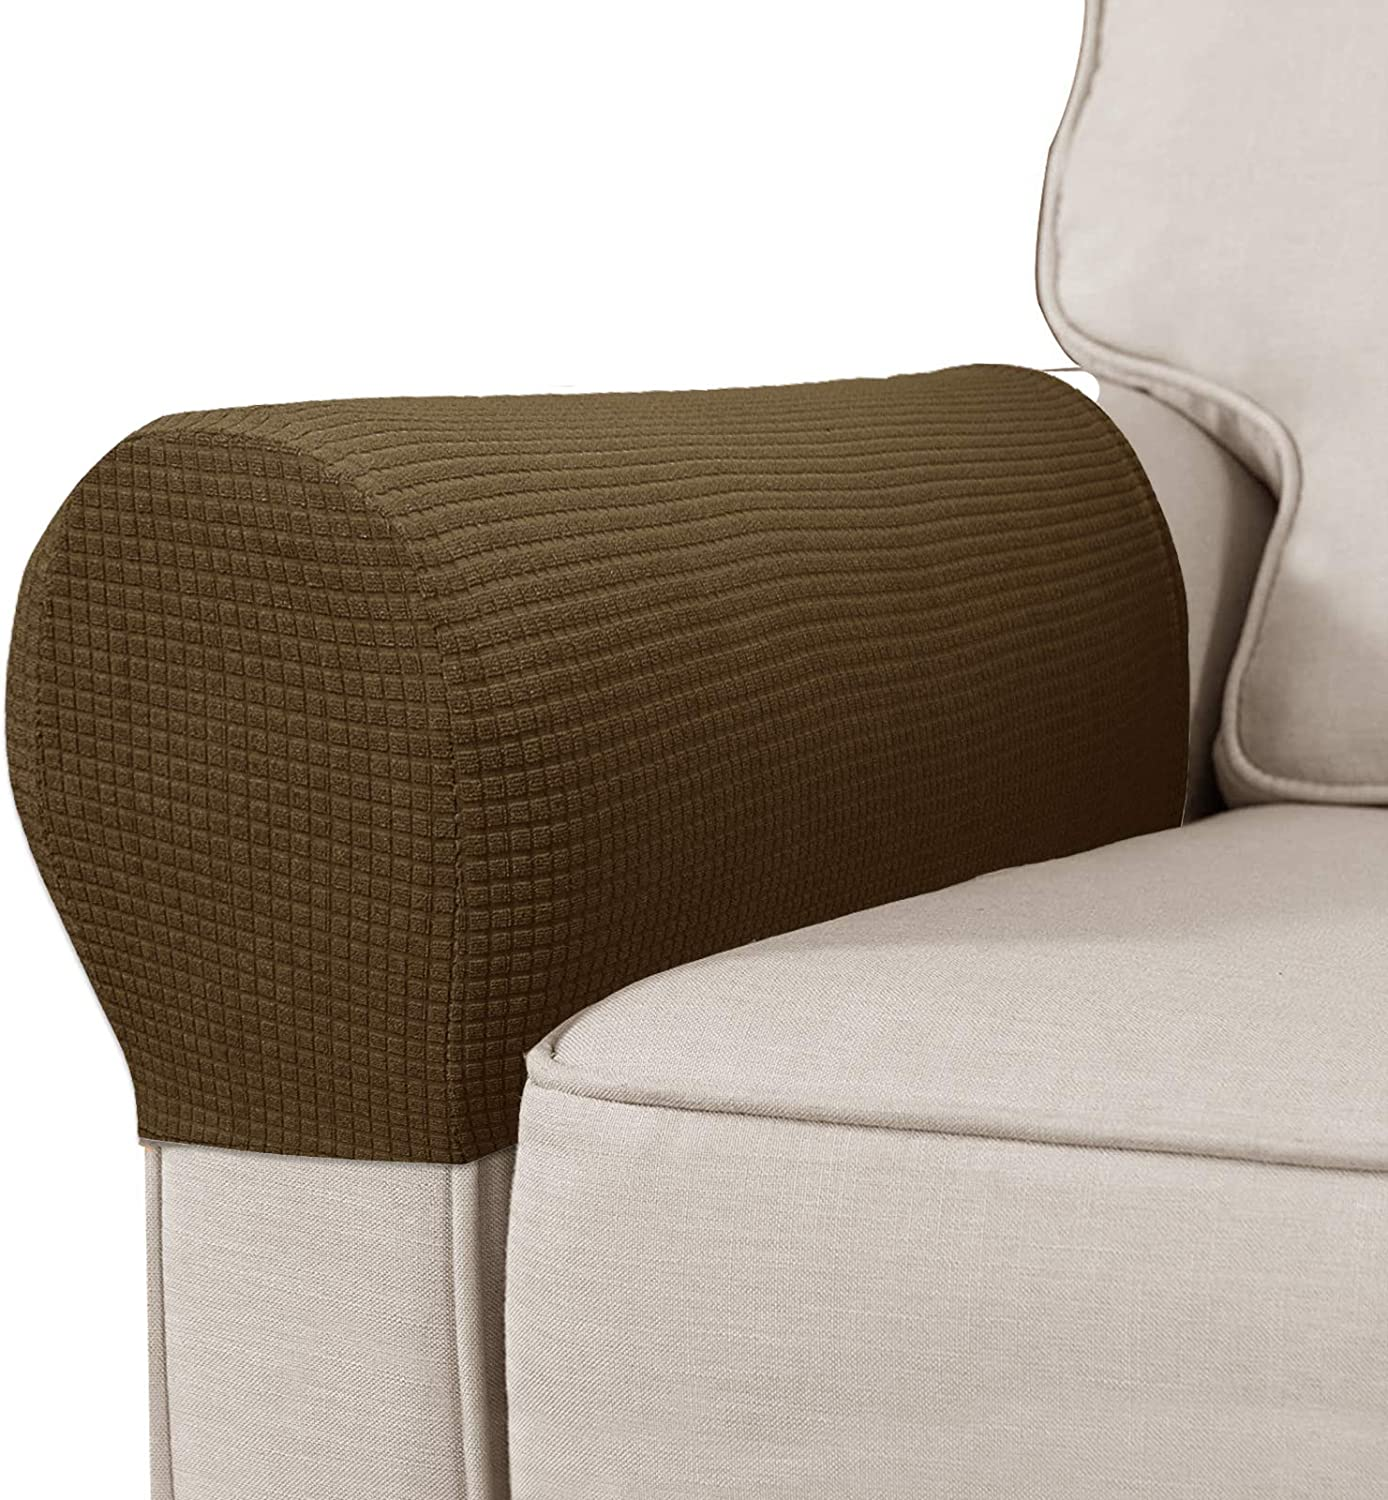 Anti-Slip Waterproof Stretch Fabric Armrest Covers Furniture Protector Armchair Slipcovers for Recliner Sofa Set of 2 (Coffee)